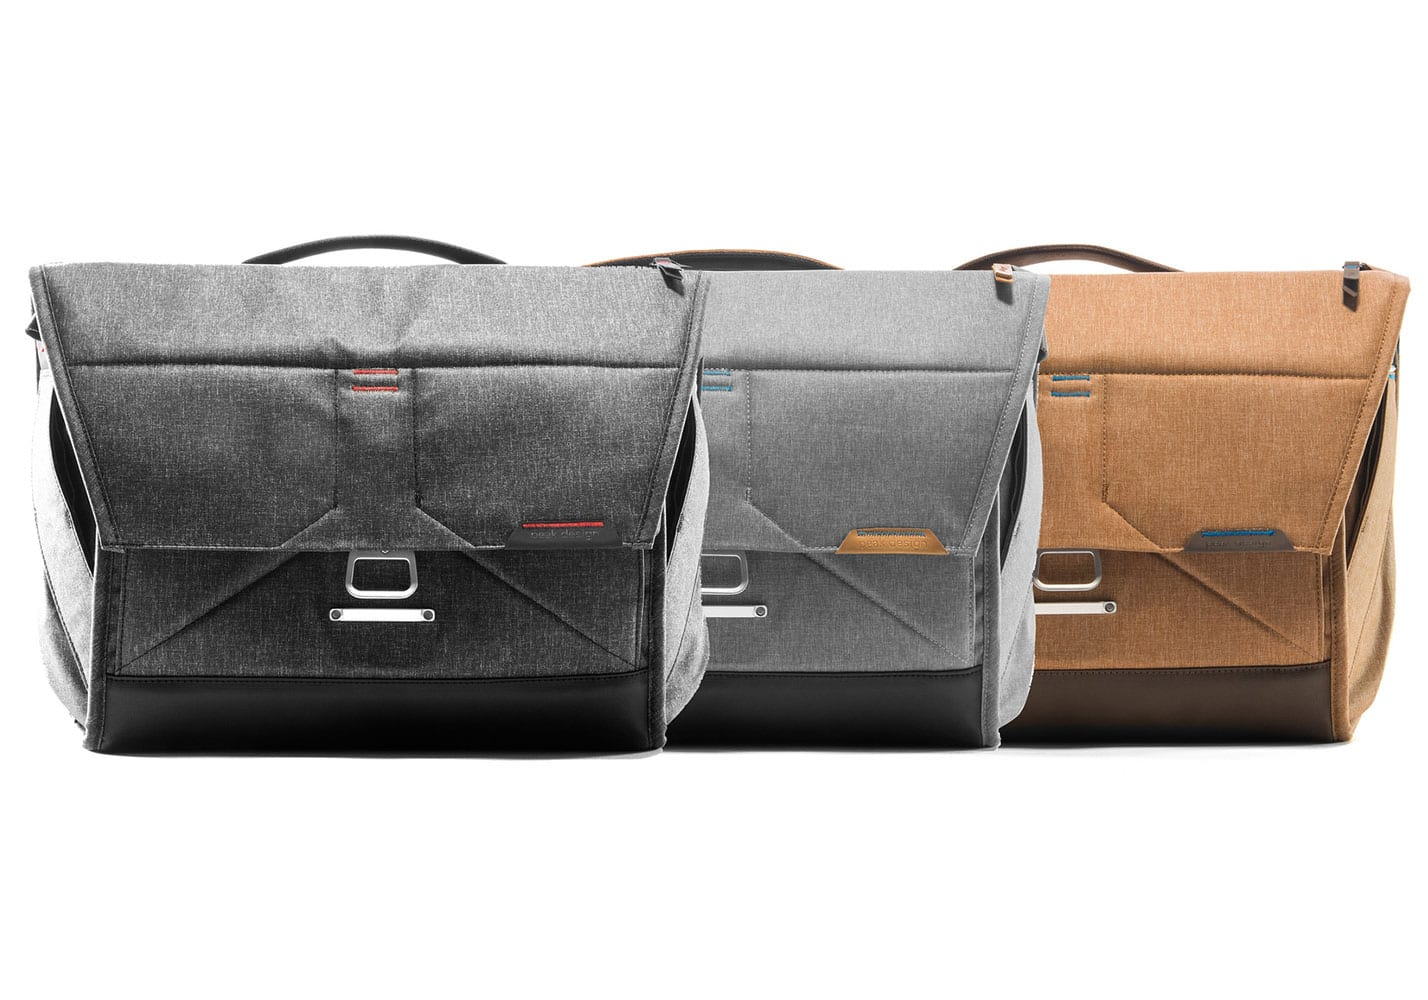 Peak Design Bags, Clips and Straps 15-25% off $164.96